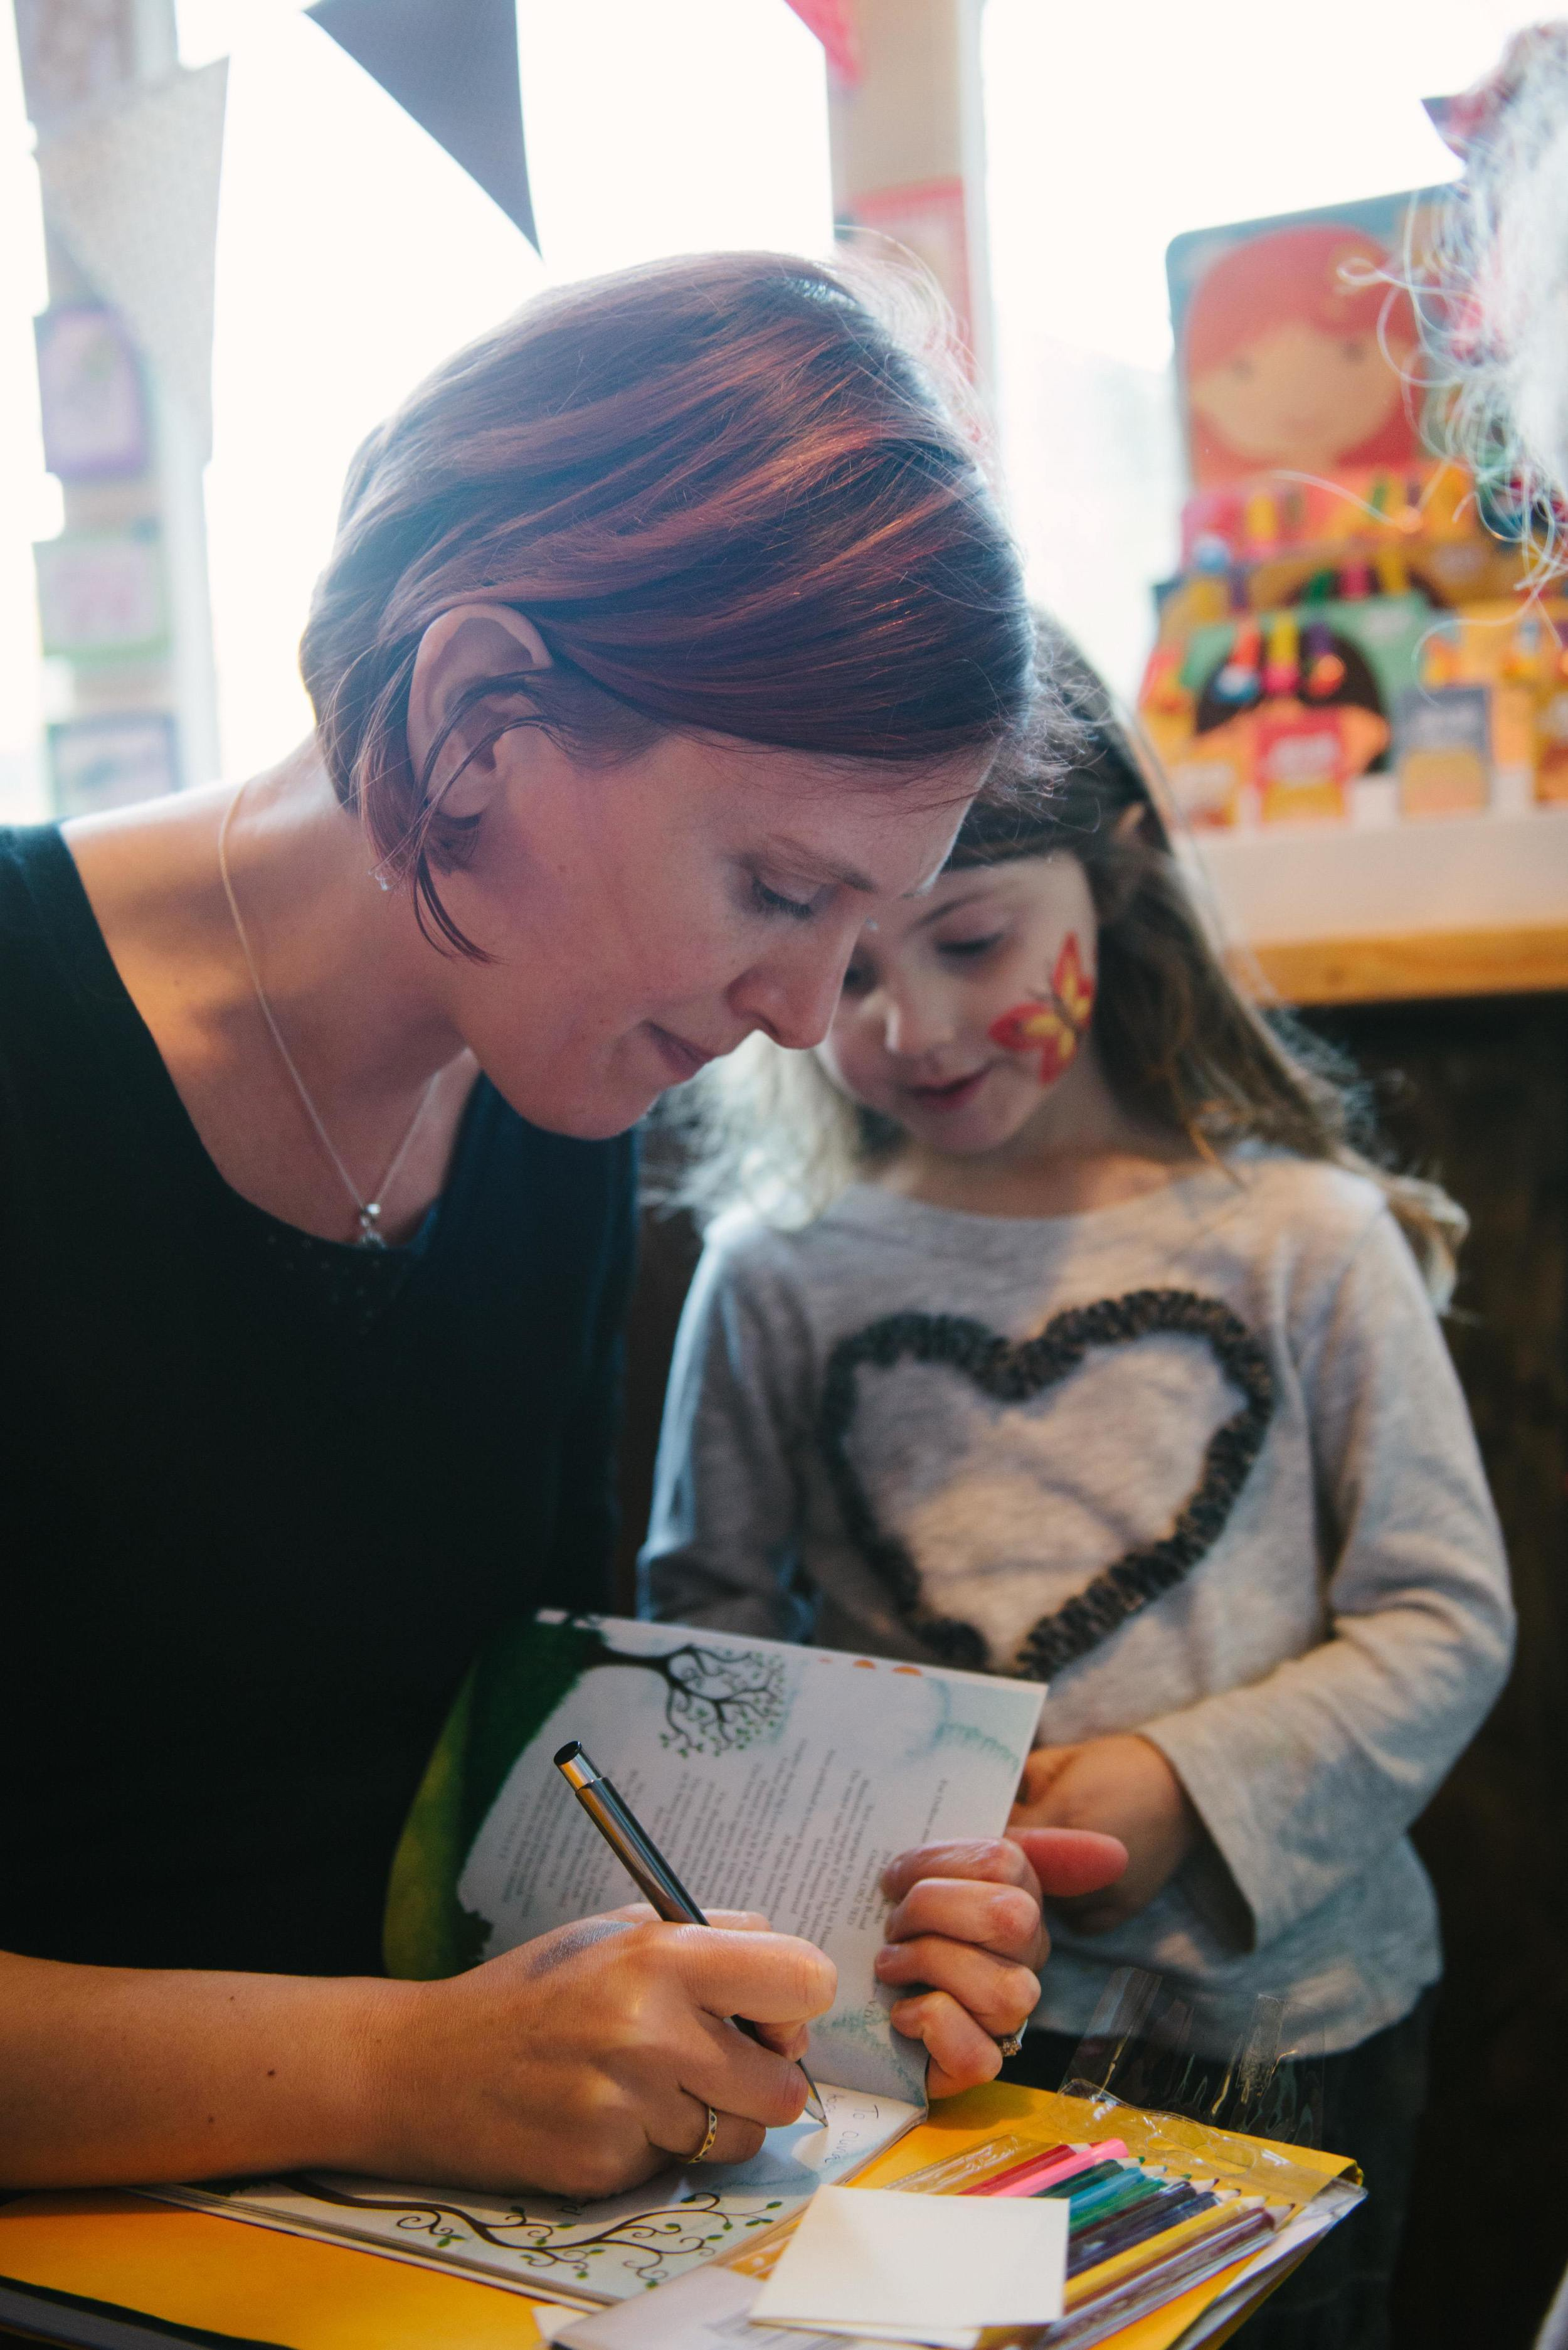 Liz signing books for children, by Sarah Mason Photography